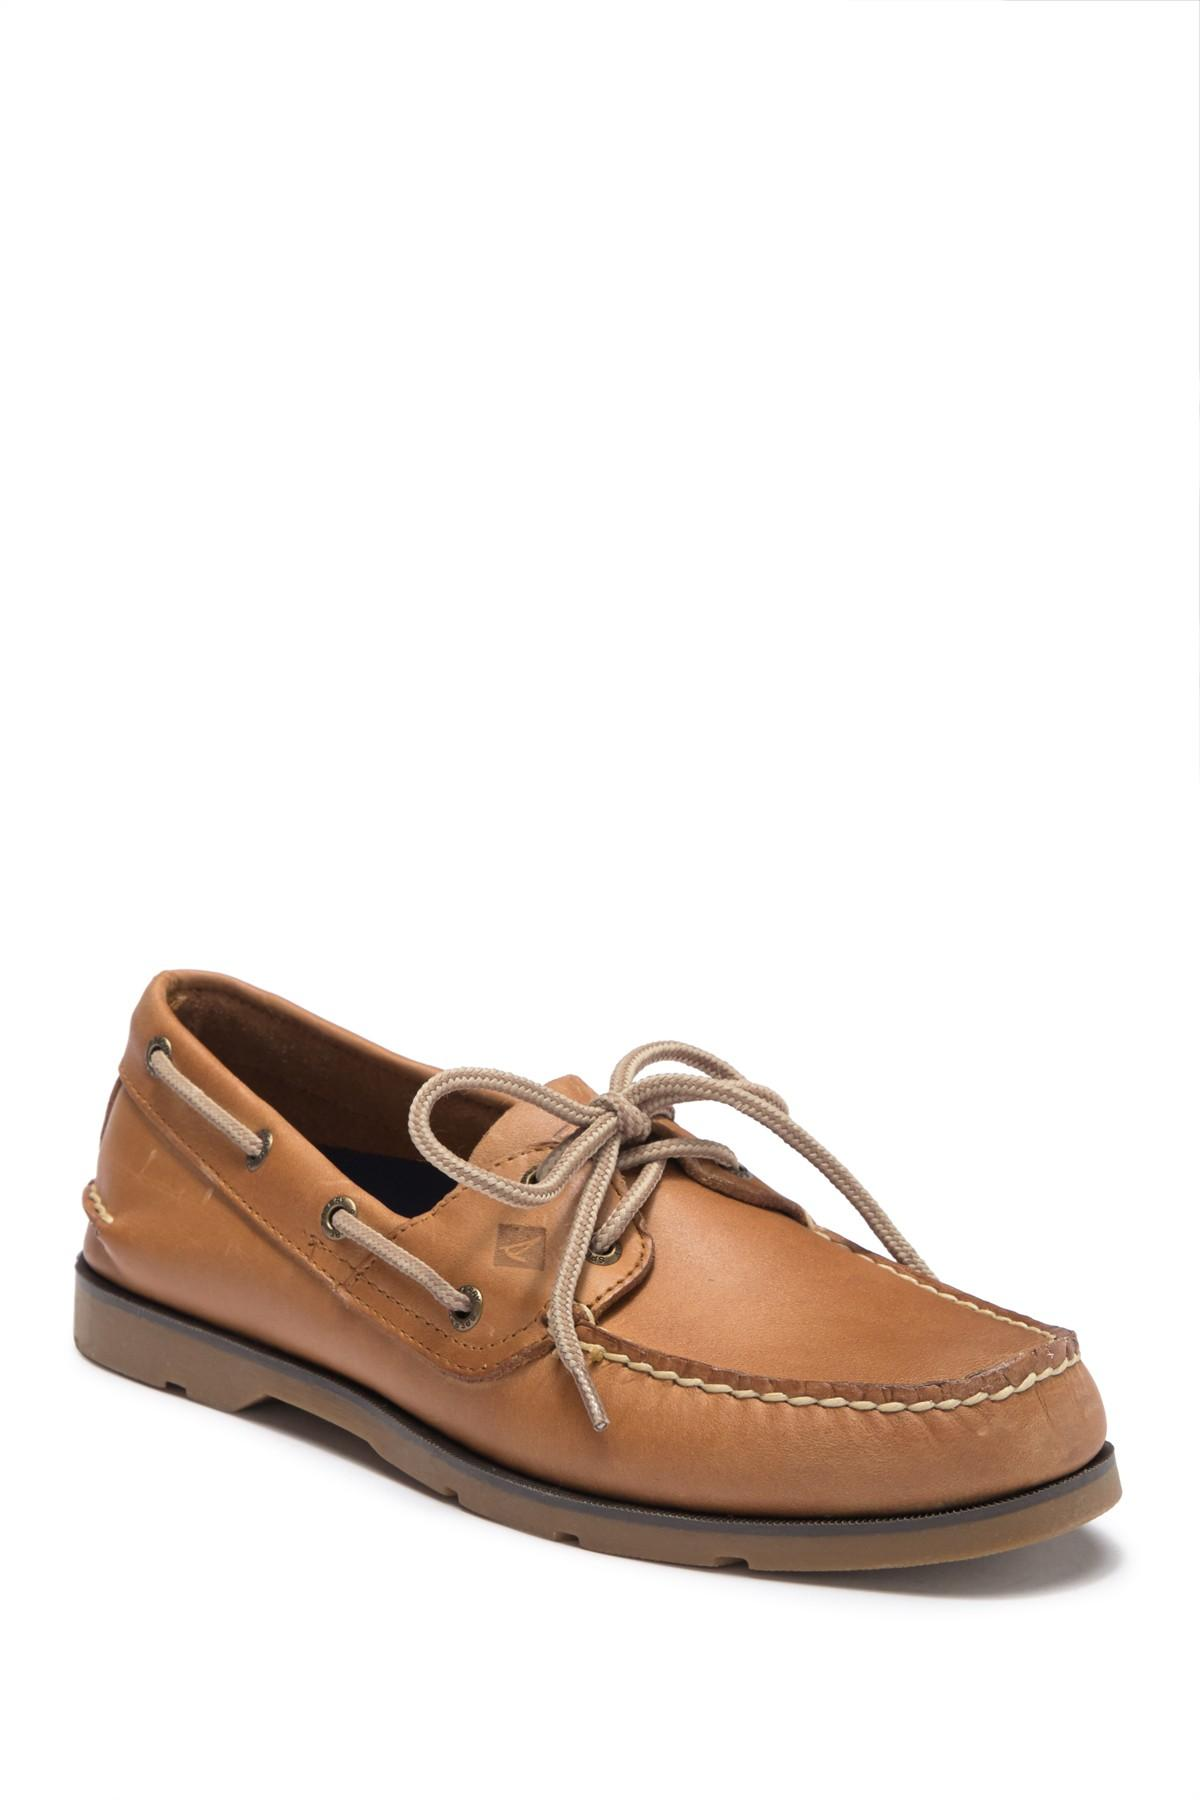 643f8e2c478 Lyst - Sperry Top-Sider Leeward Leather Boat Shoe in Brown for Men